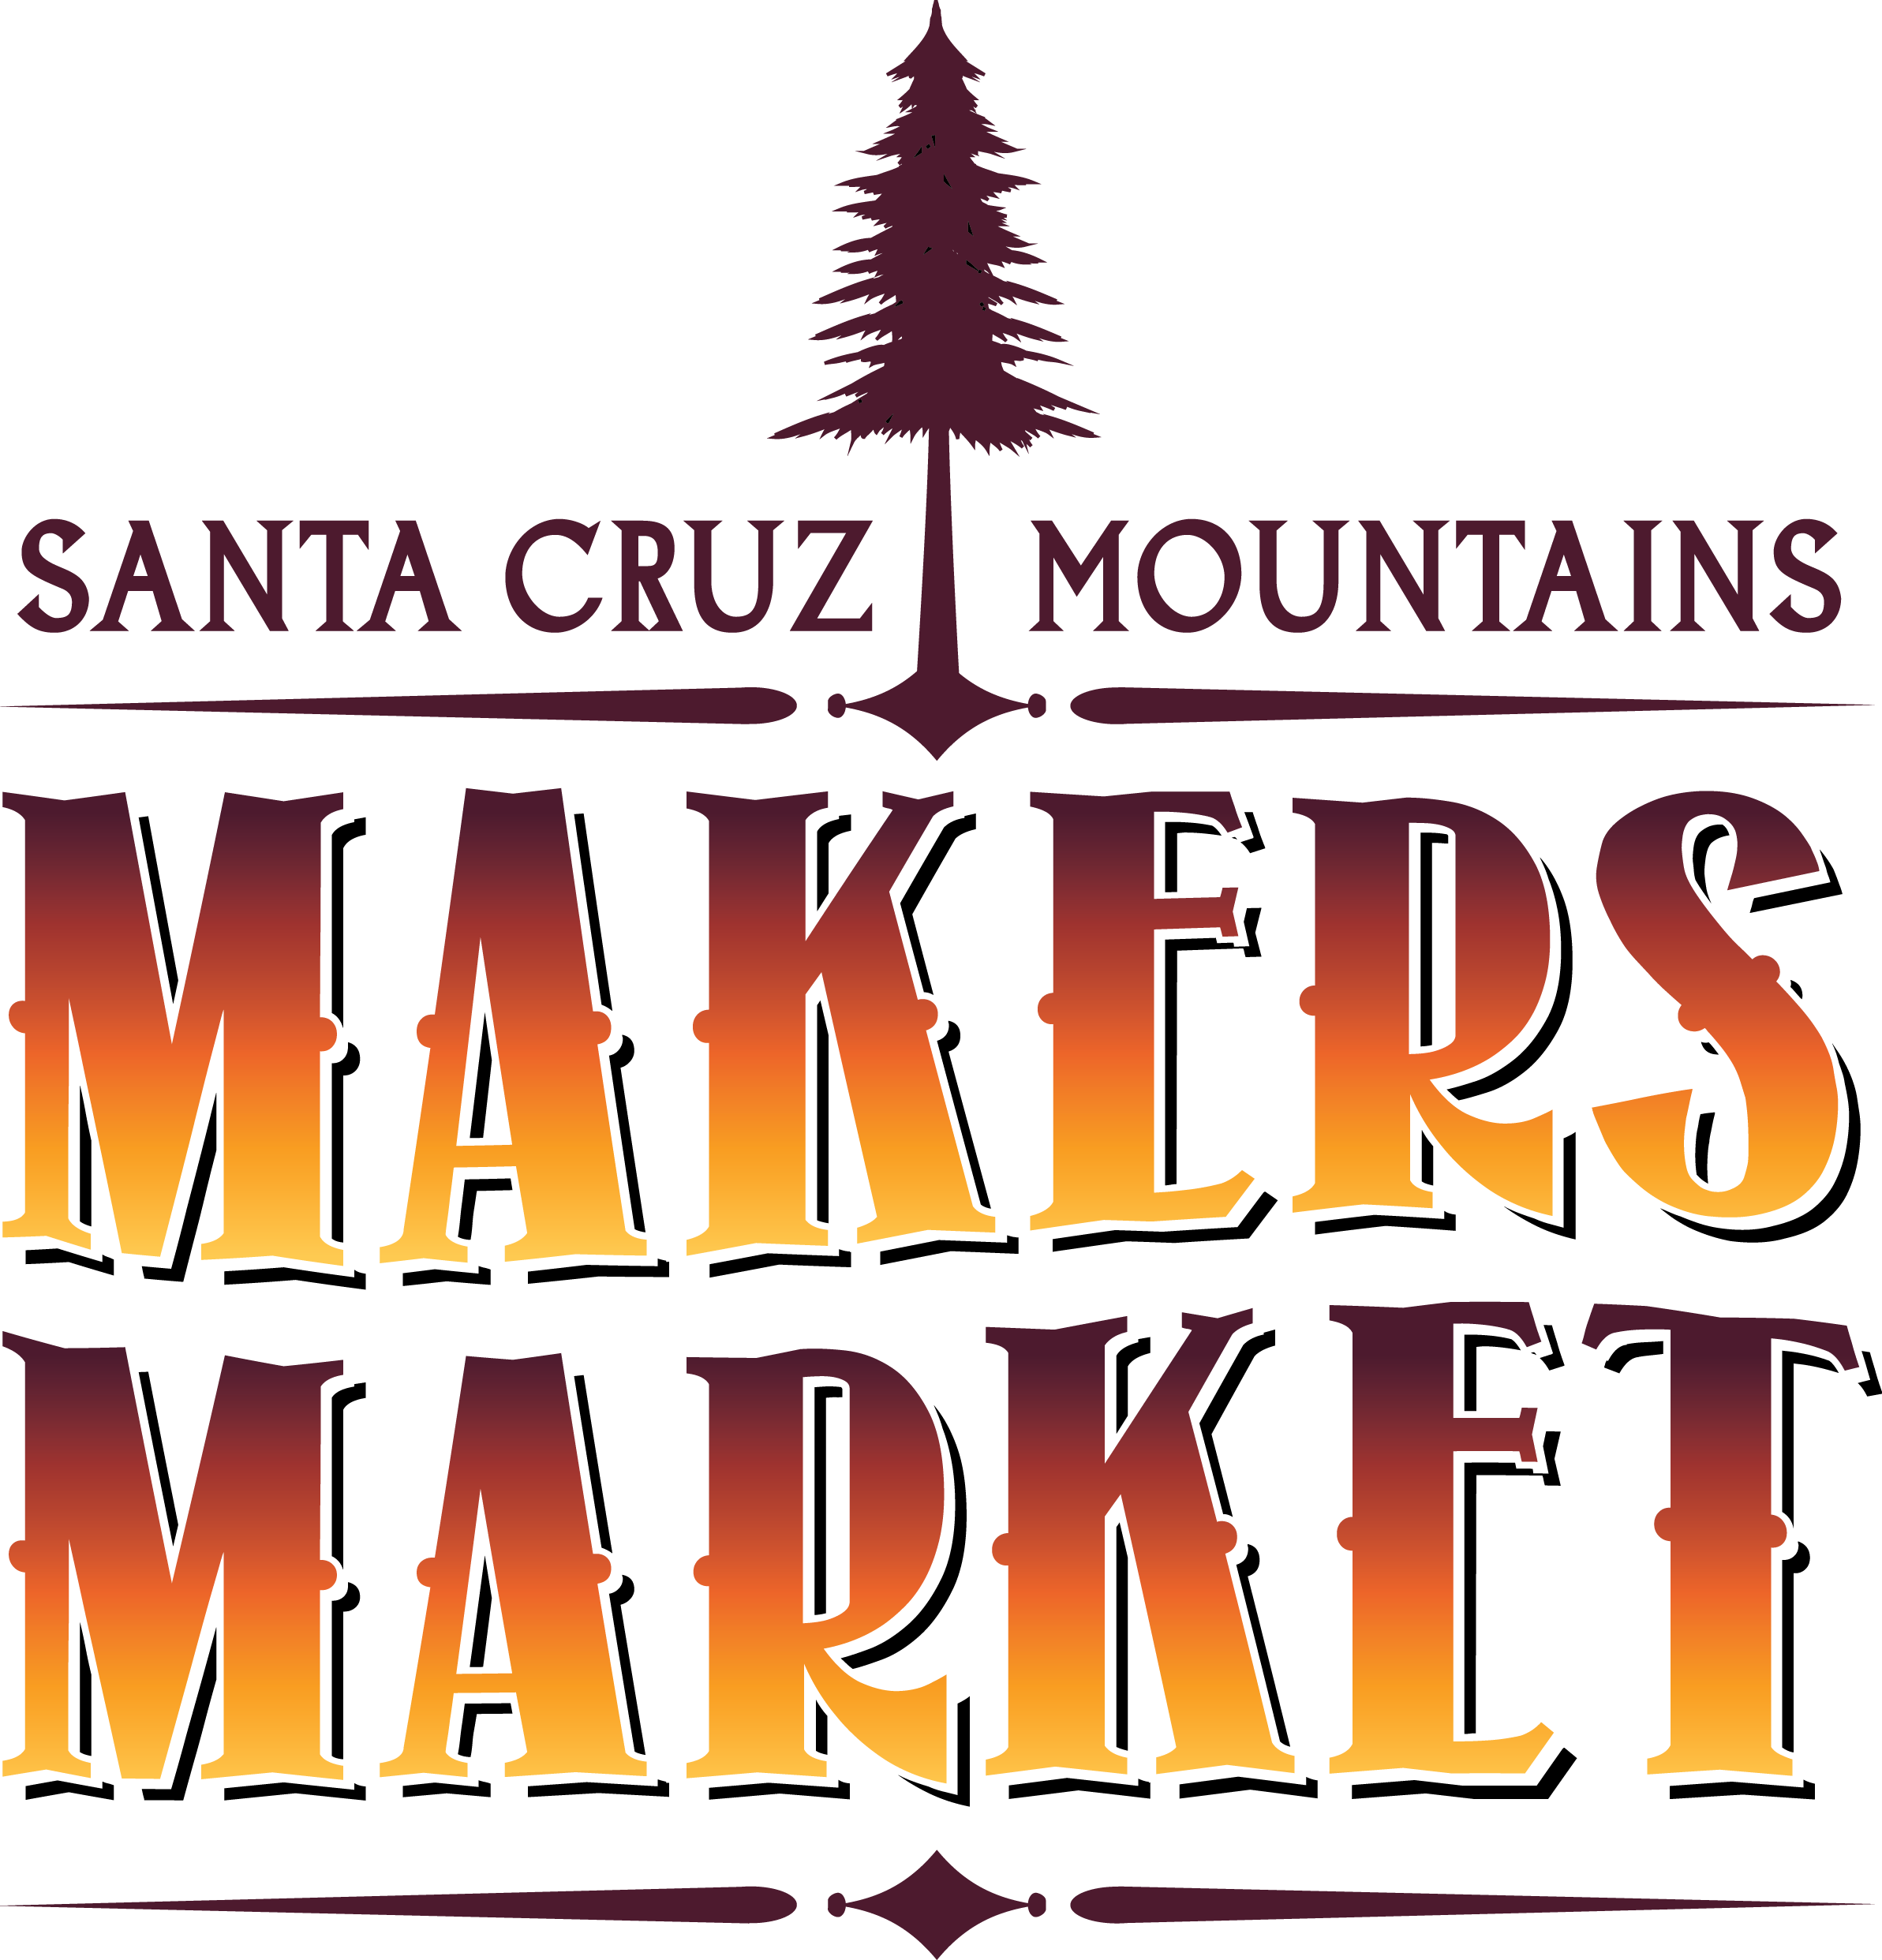 The Santa Cruz Mountains Makers' Market